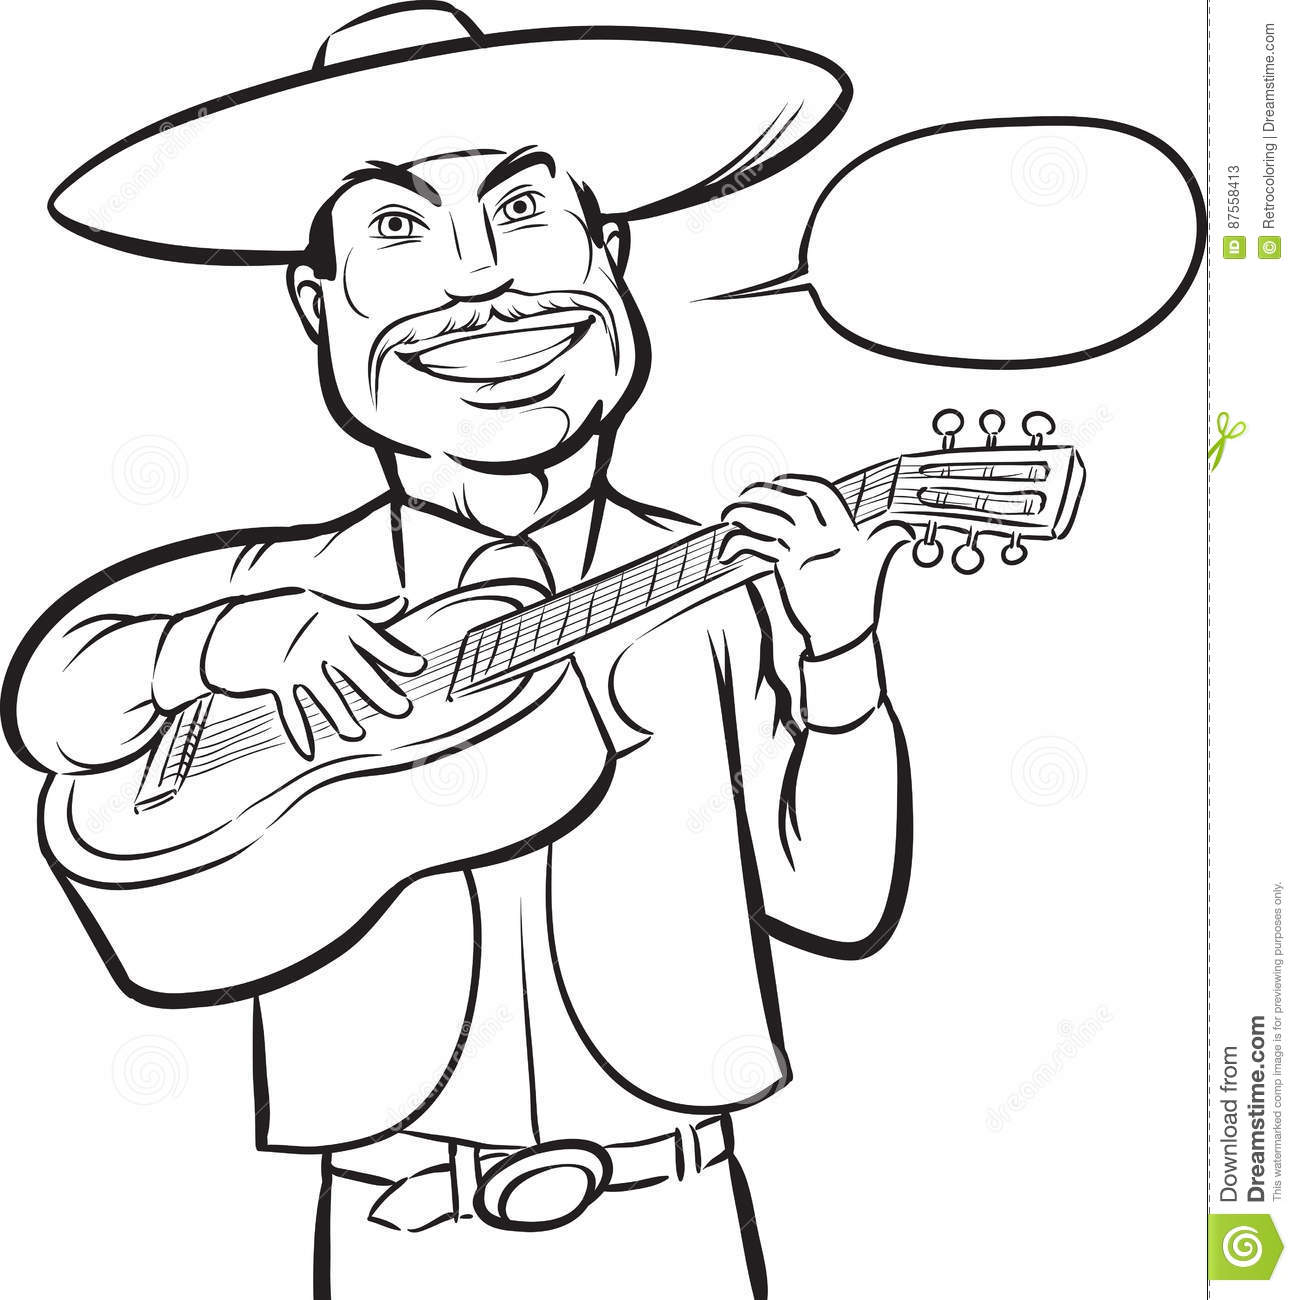 mariachi singer guitarist coloring page black coloring drawing